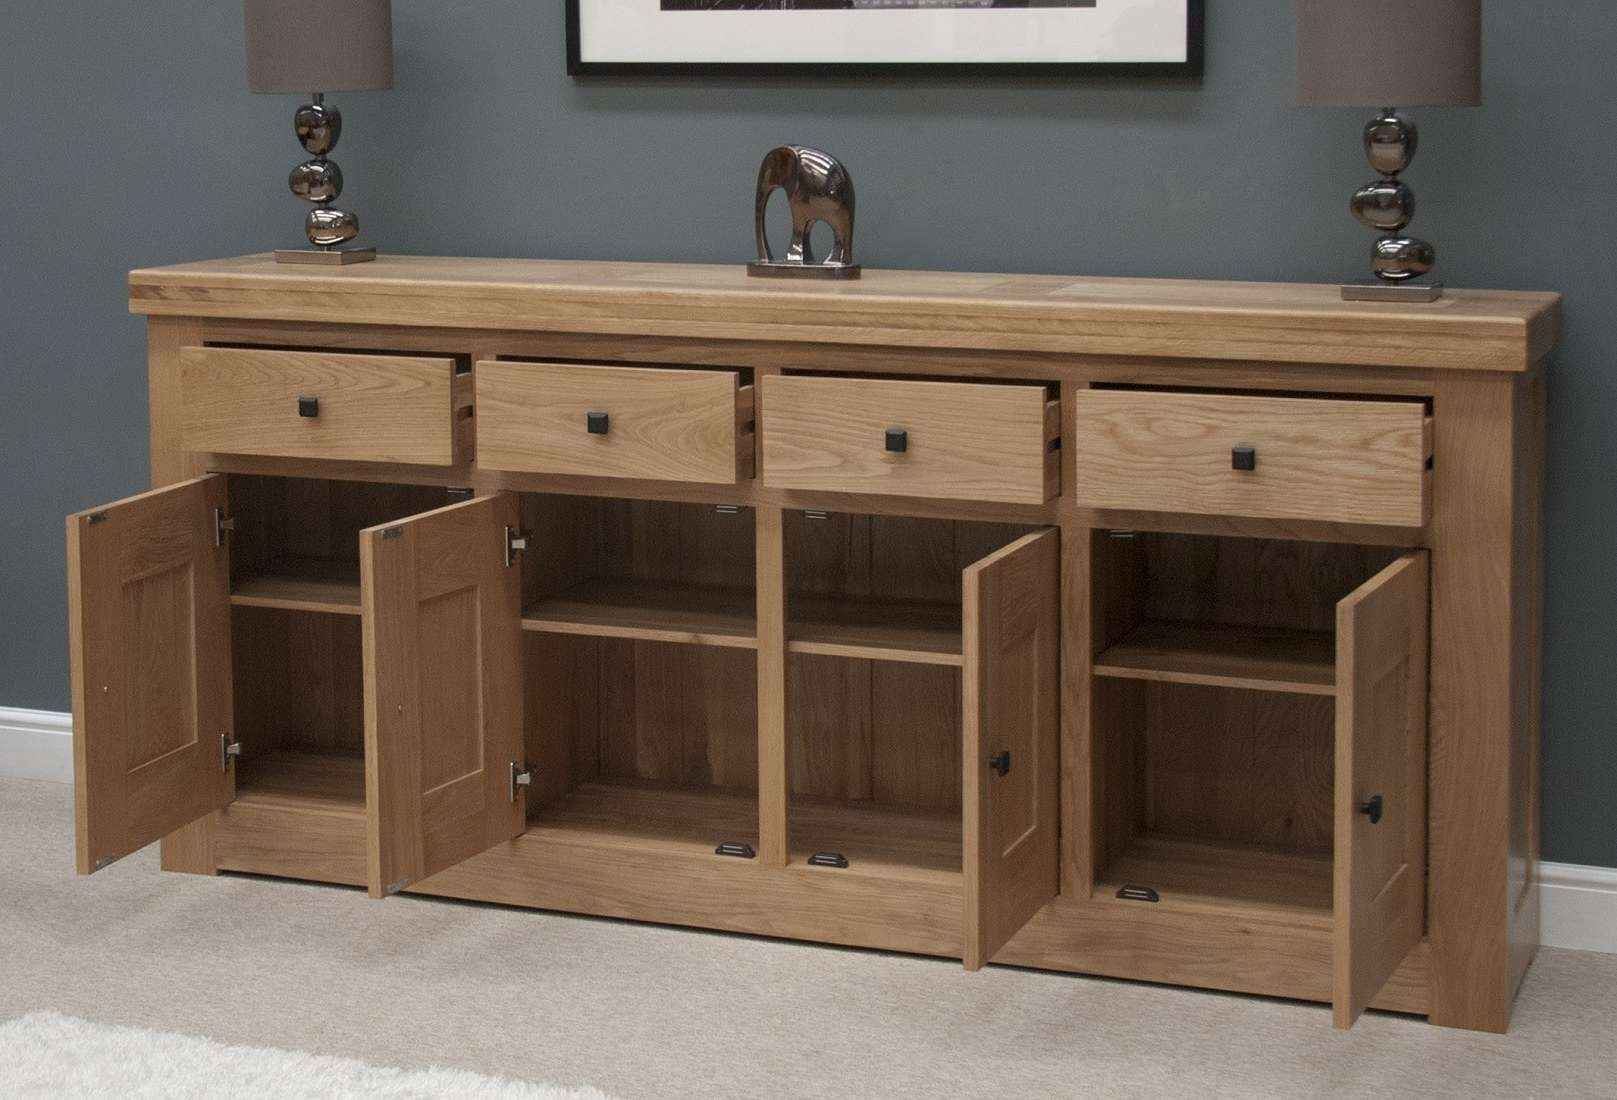 French Bordeaux Oak Extra Large 4 Door Sideboard | Oak Furniture Uk Throughout Rustic Oak Large Sideboards (View 6 of 20)